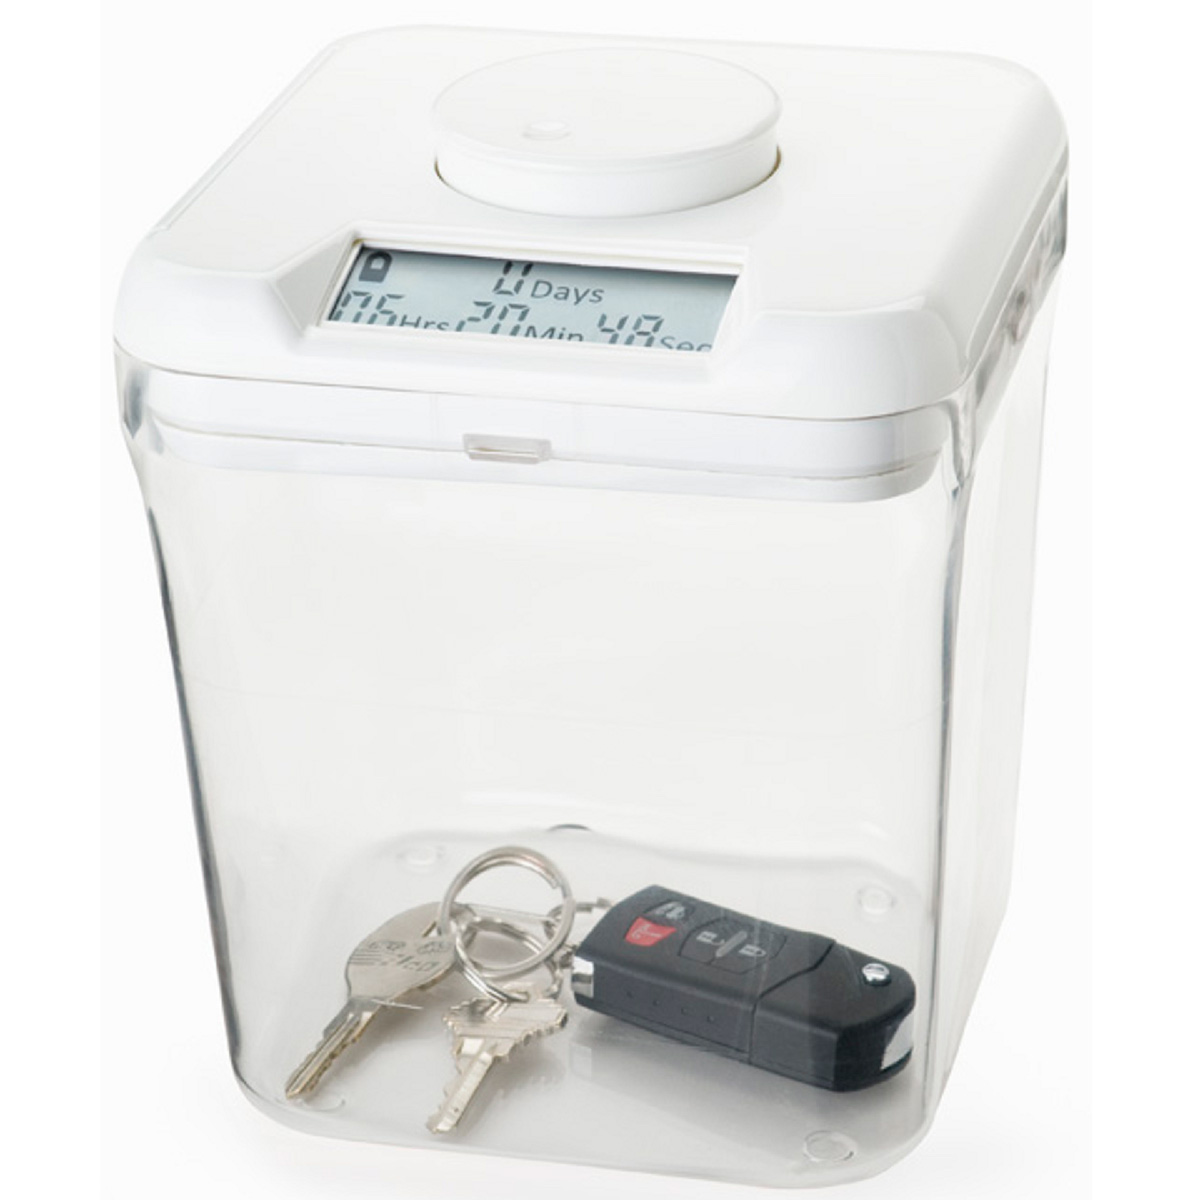 the kitchen safe - time locking container